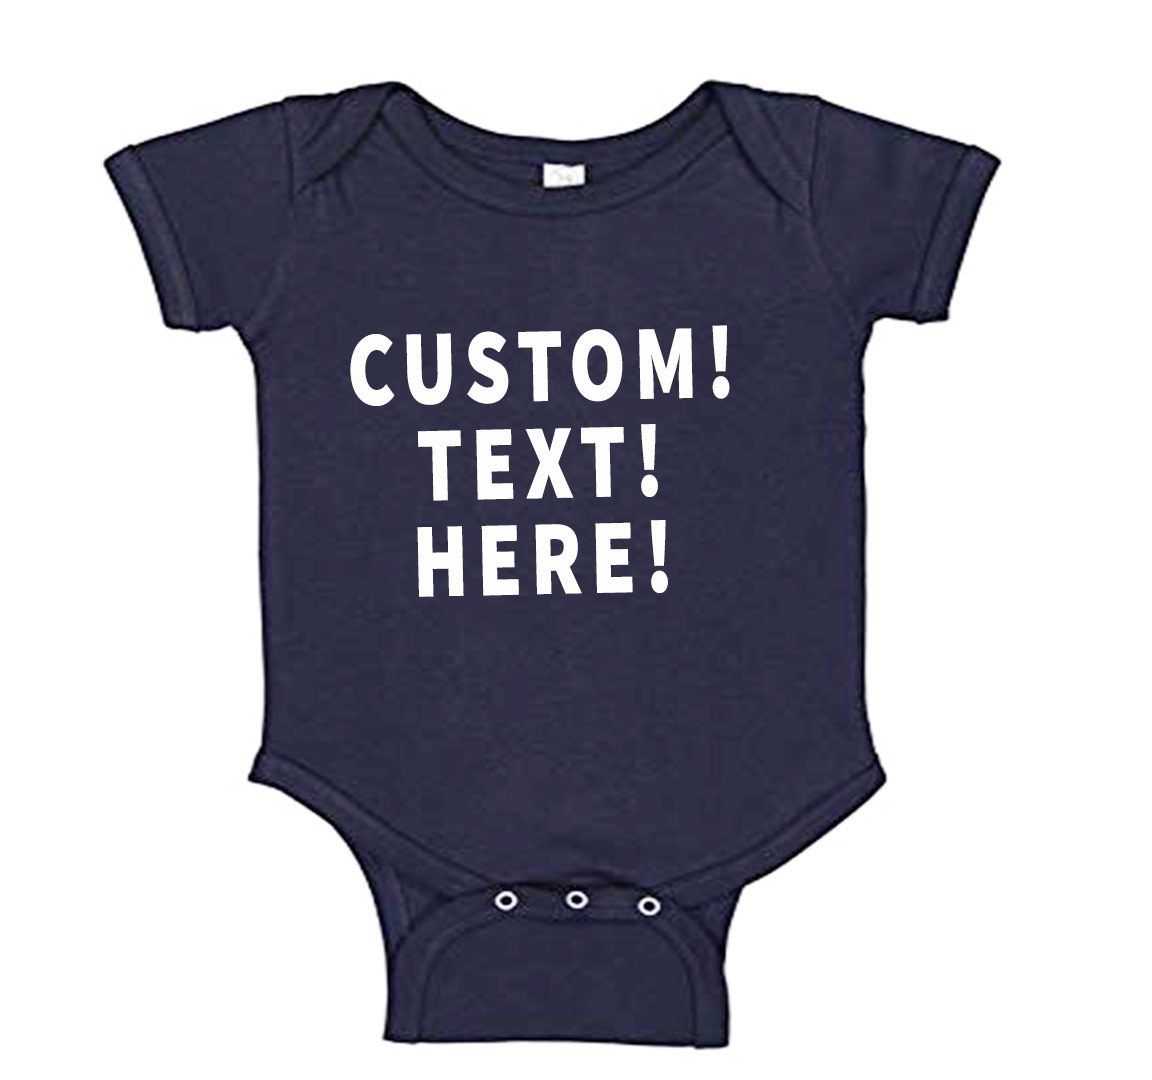 Add Text or Personalize To Solid Color Baby Onesies ...